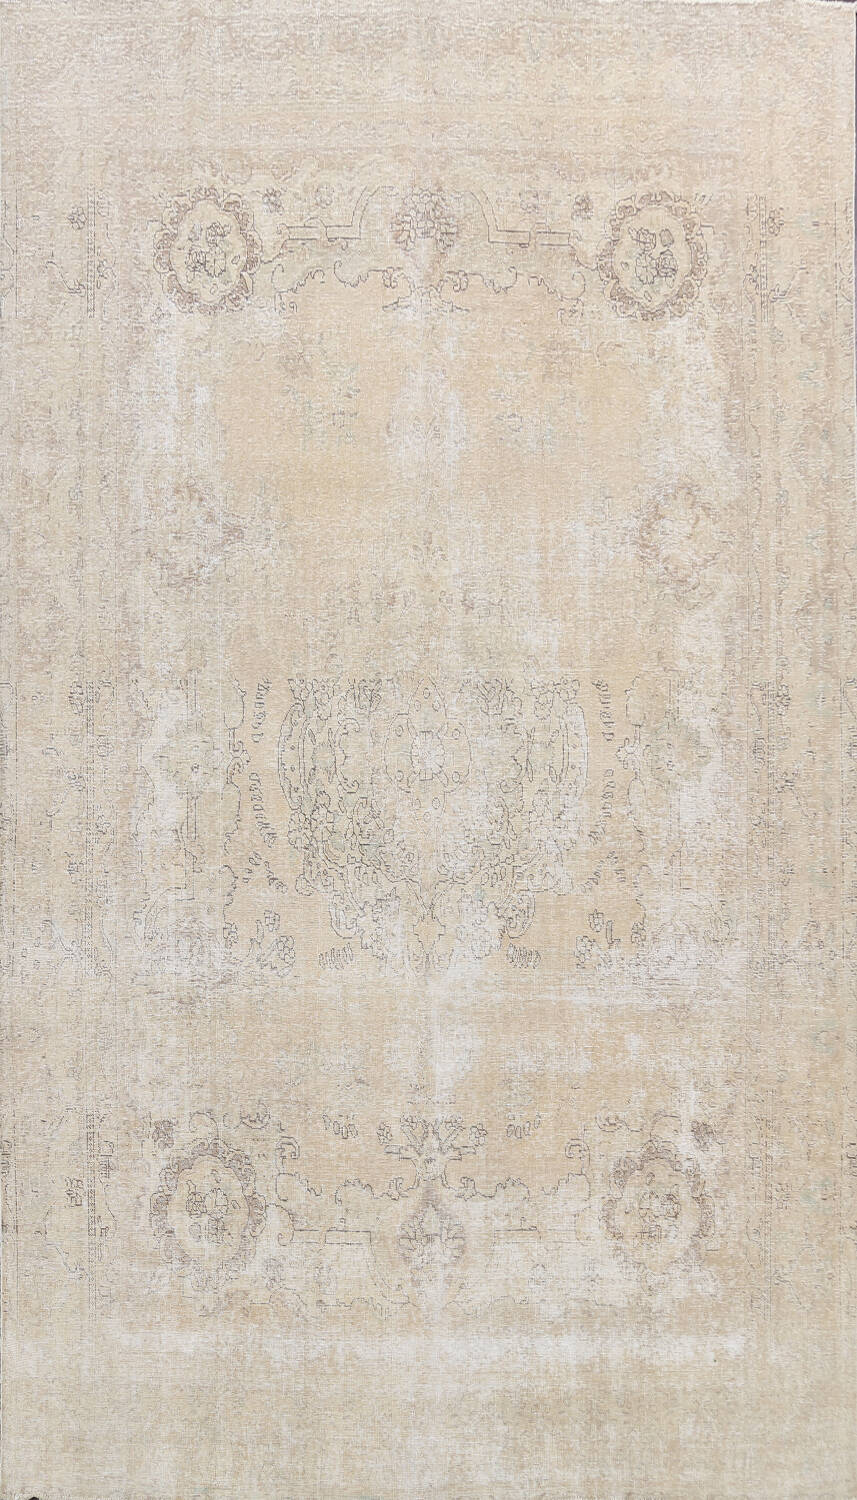 Muted Distressed Tabriz Persian Area Rug 9x12 image 1